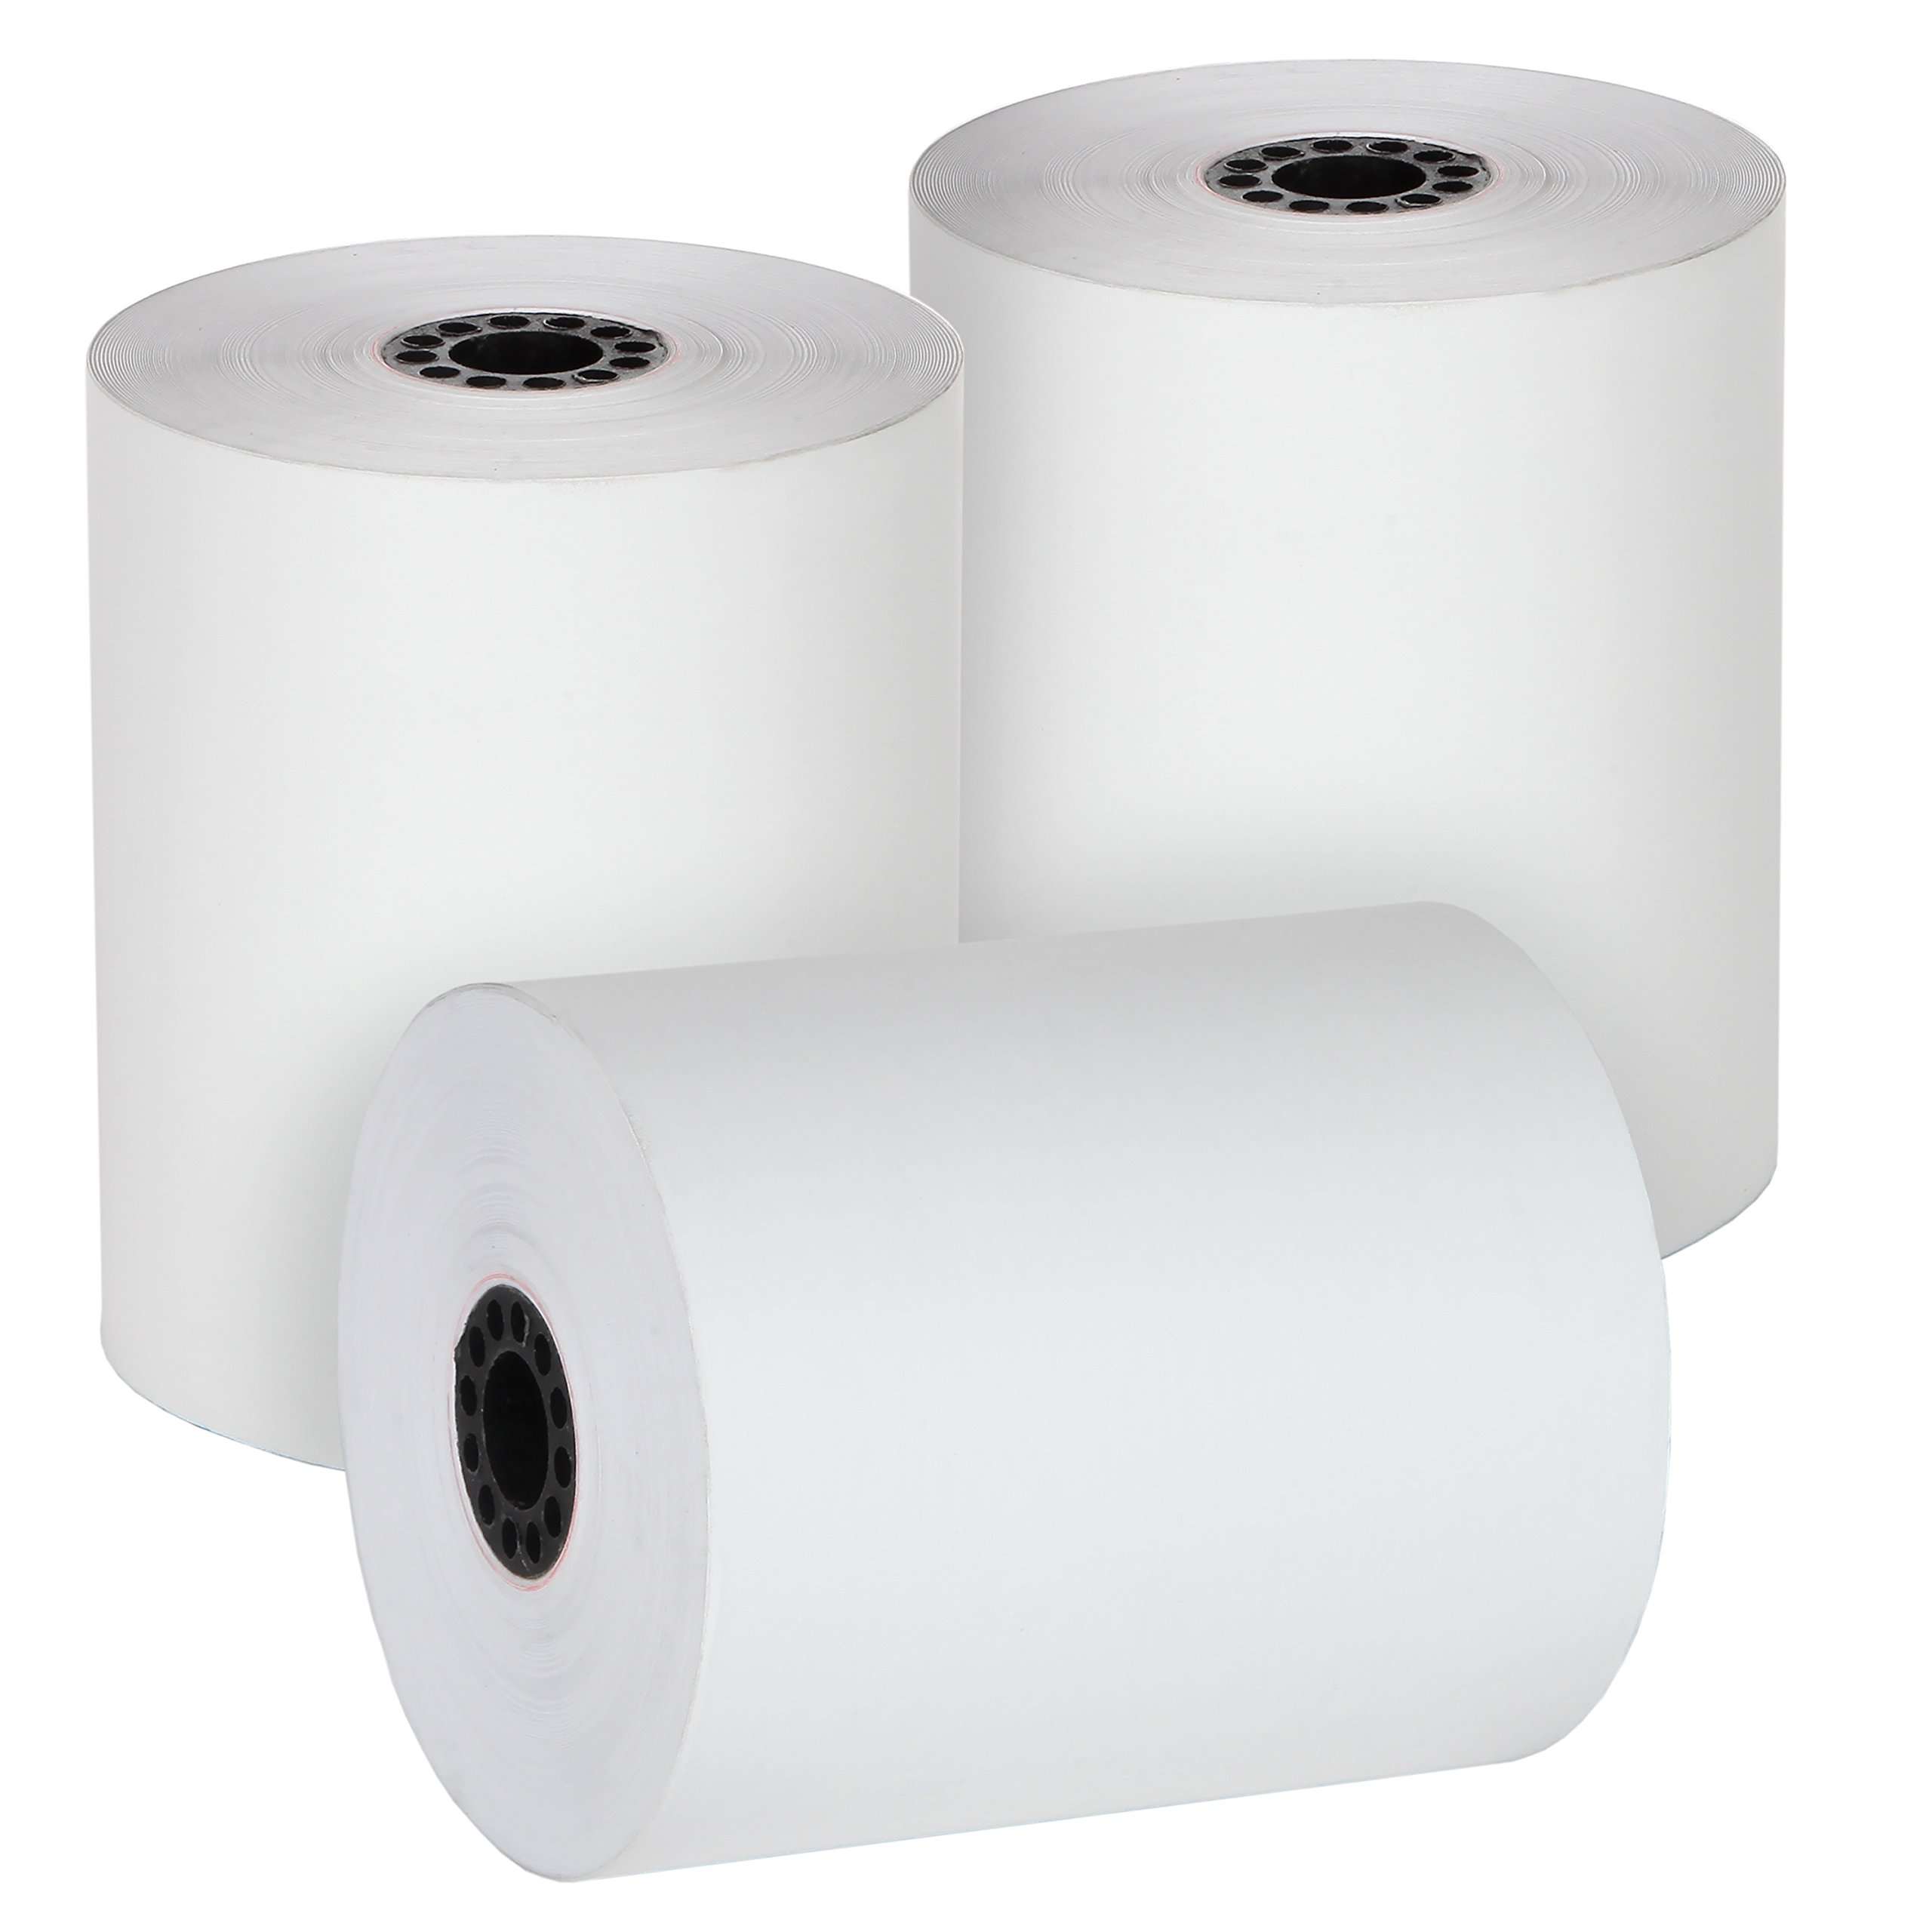 FHS Retail 3 1/8'' x 230' Guaranteed Length Thermal Receipt Paper Rolls (50 Rolls) - For Most Receipt Printers, POS Systems, And Cash Registers by FHS Retail